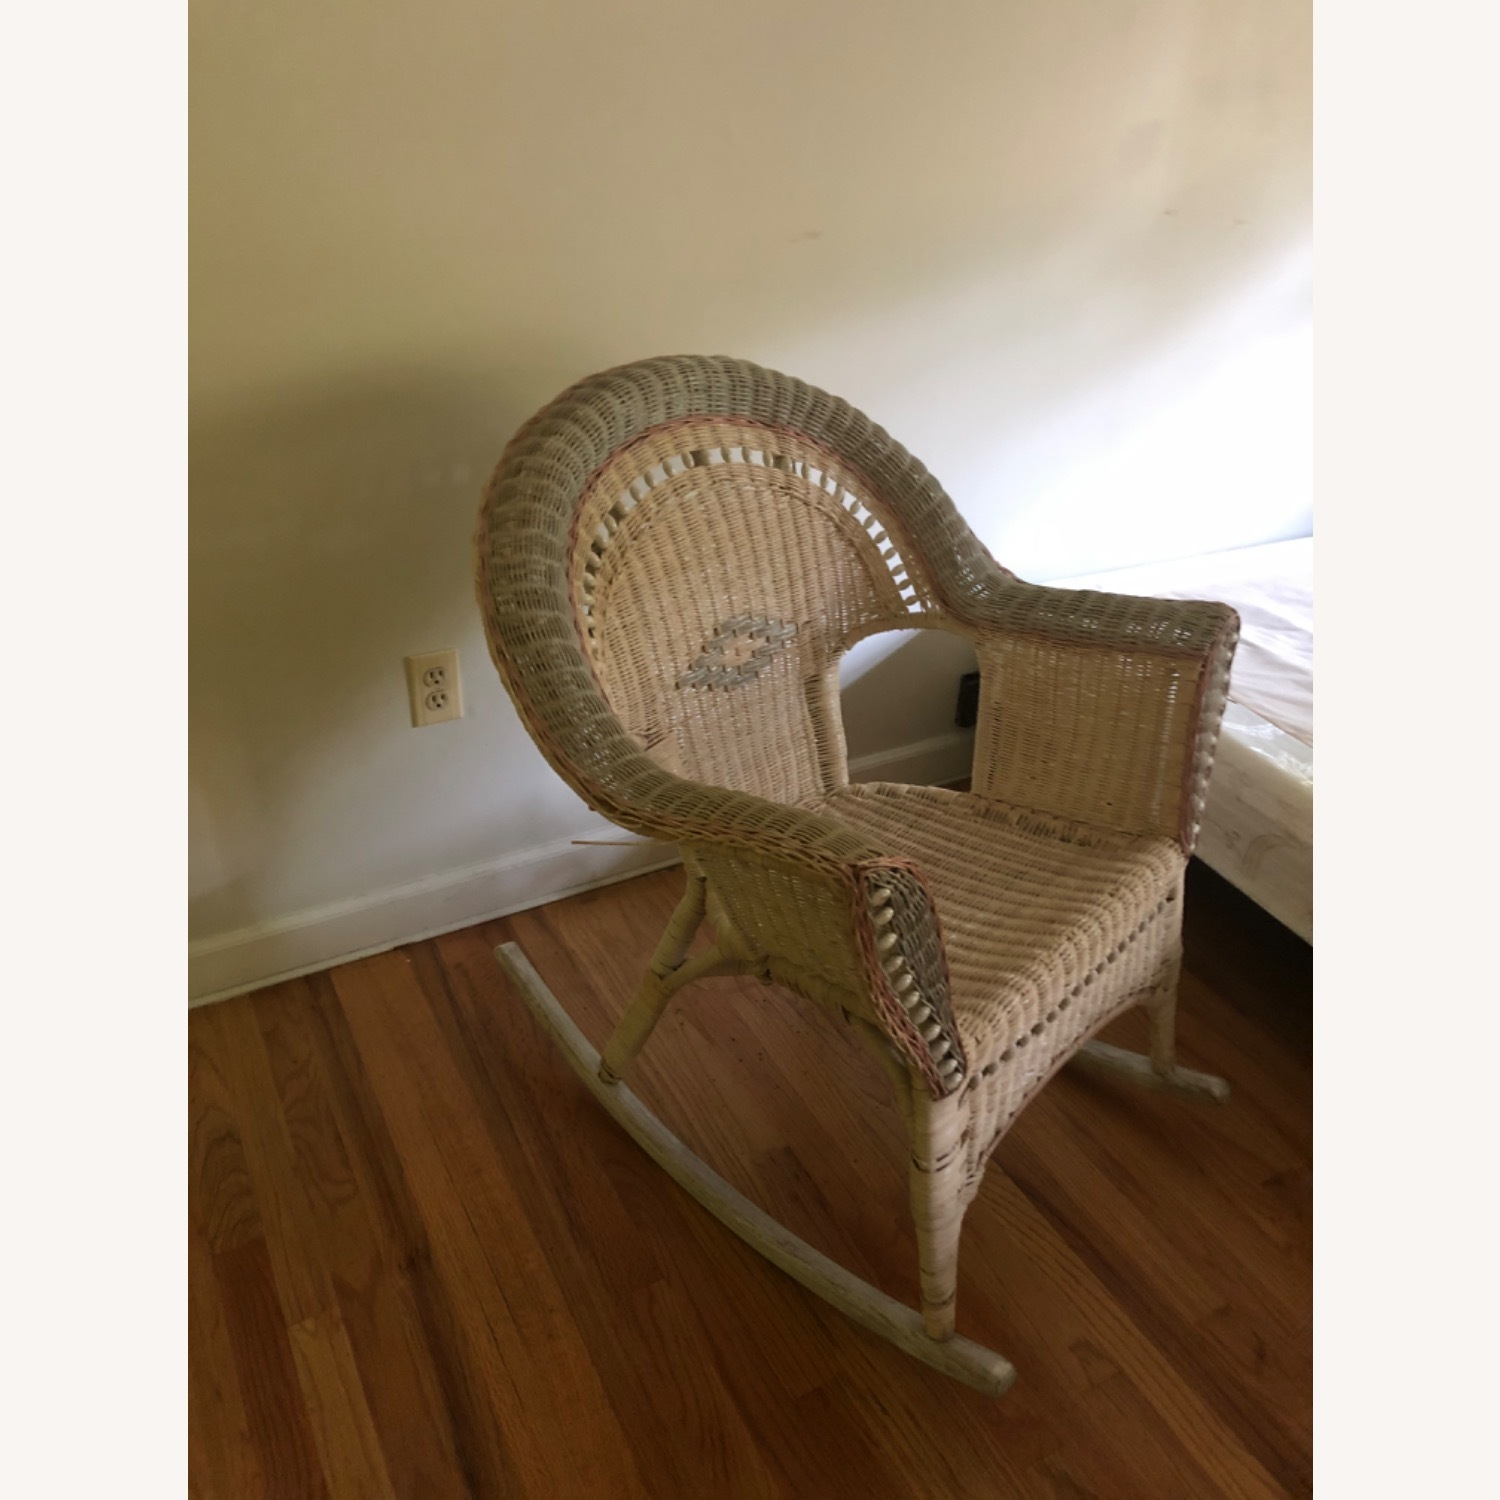 Wicker Ricking Chair - image-1